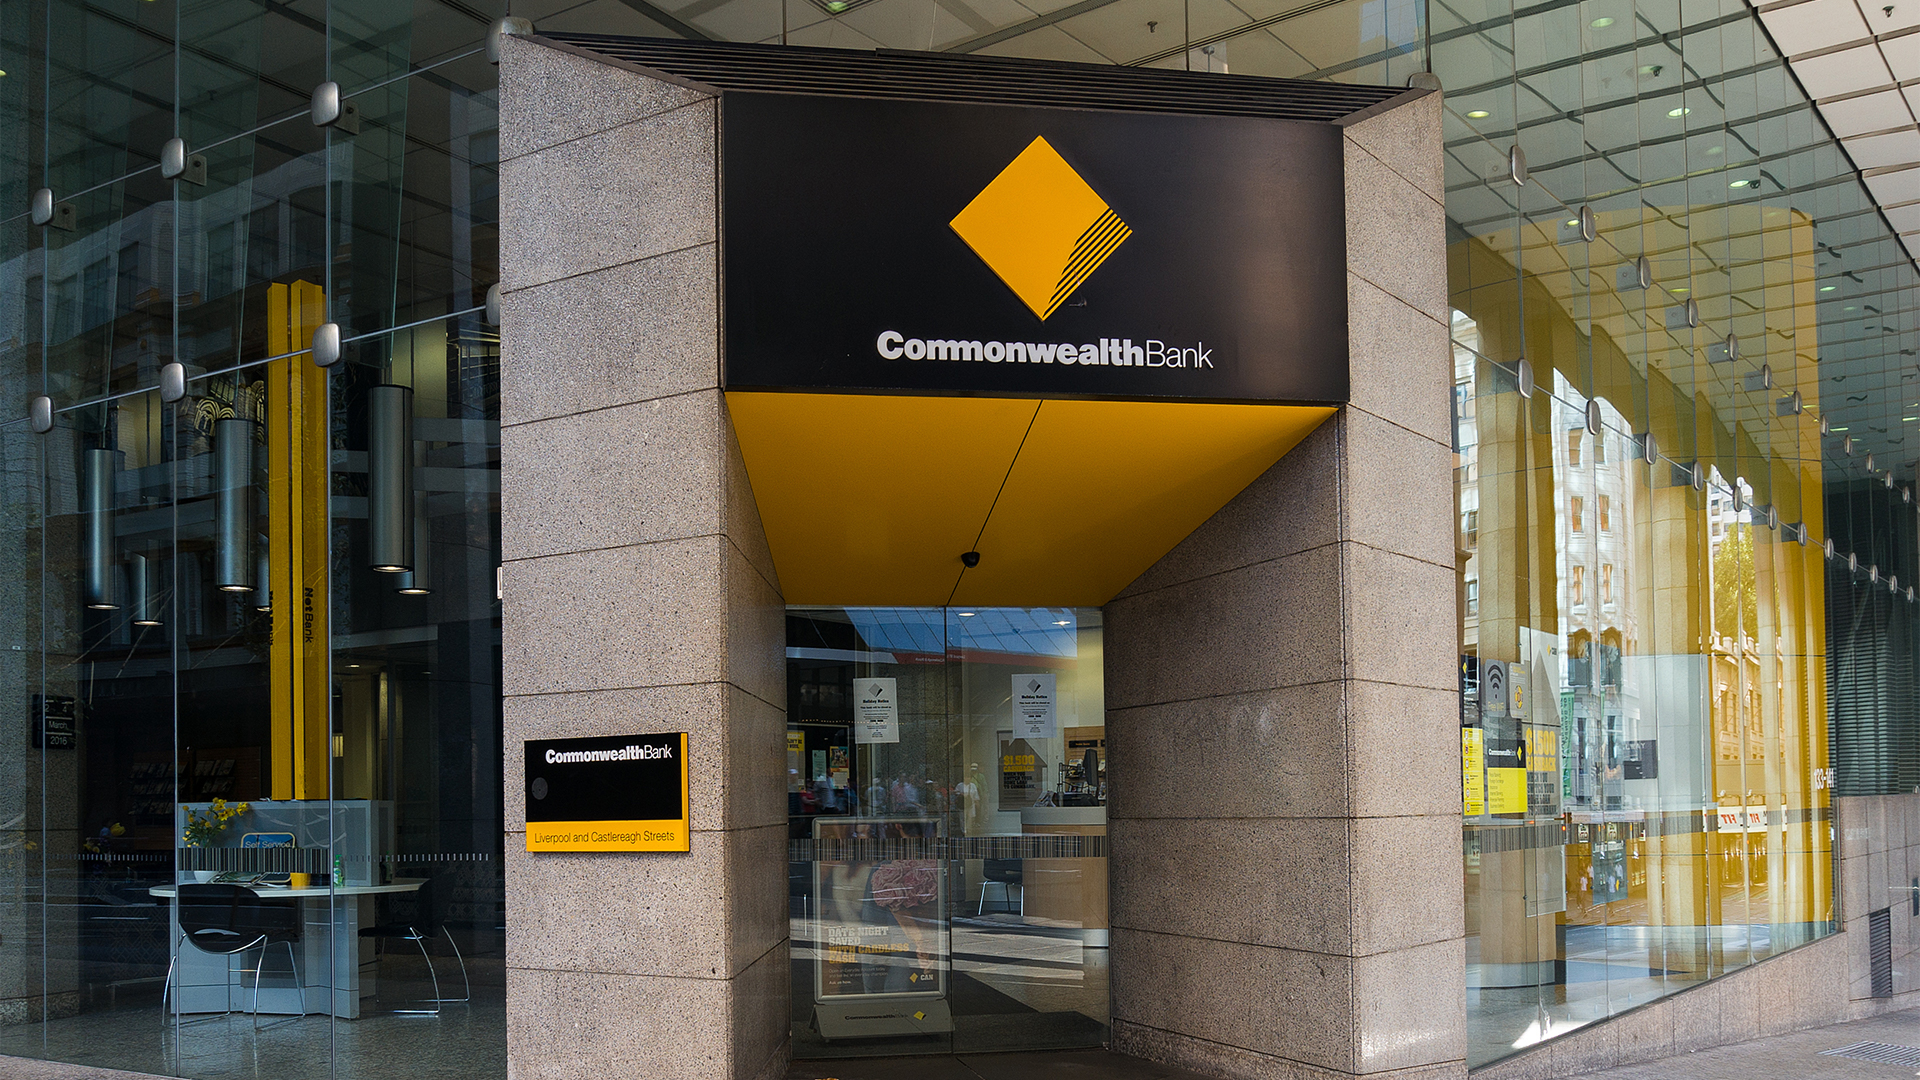 Commonwealth Bank (ASX:CBA) makes new $300 million provision for remediation